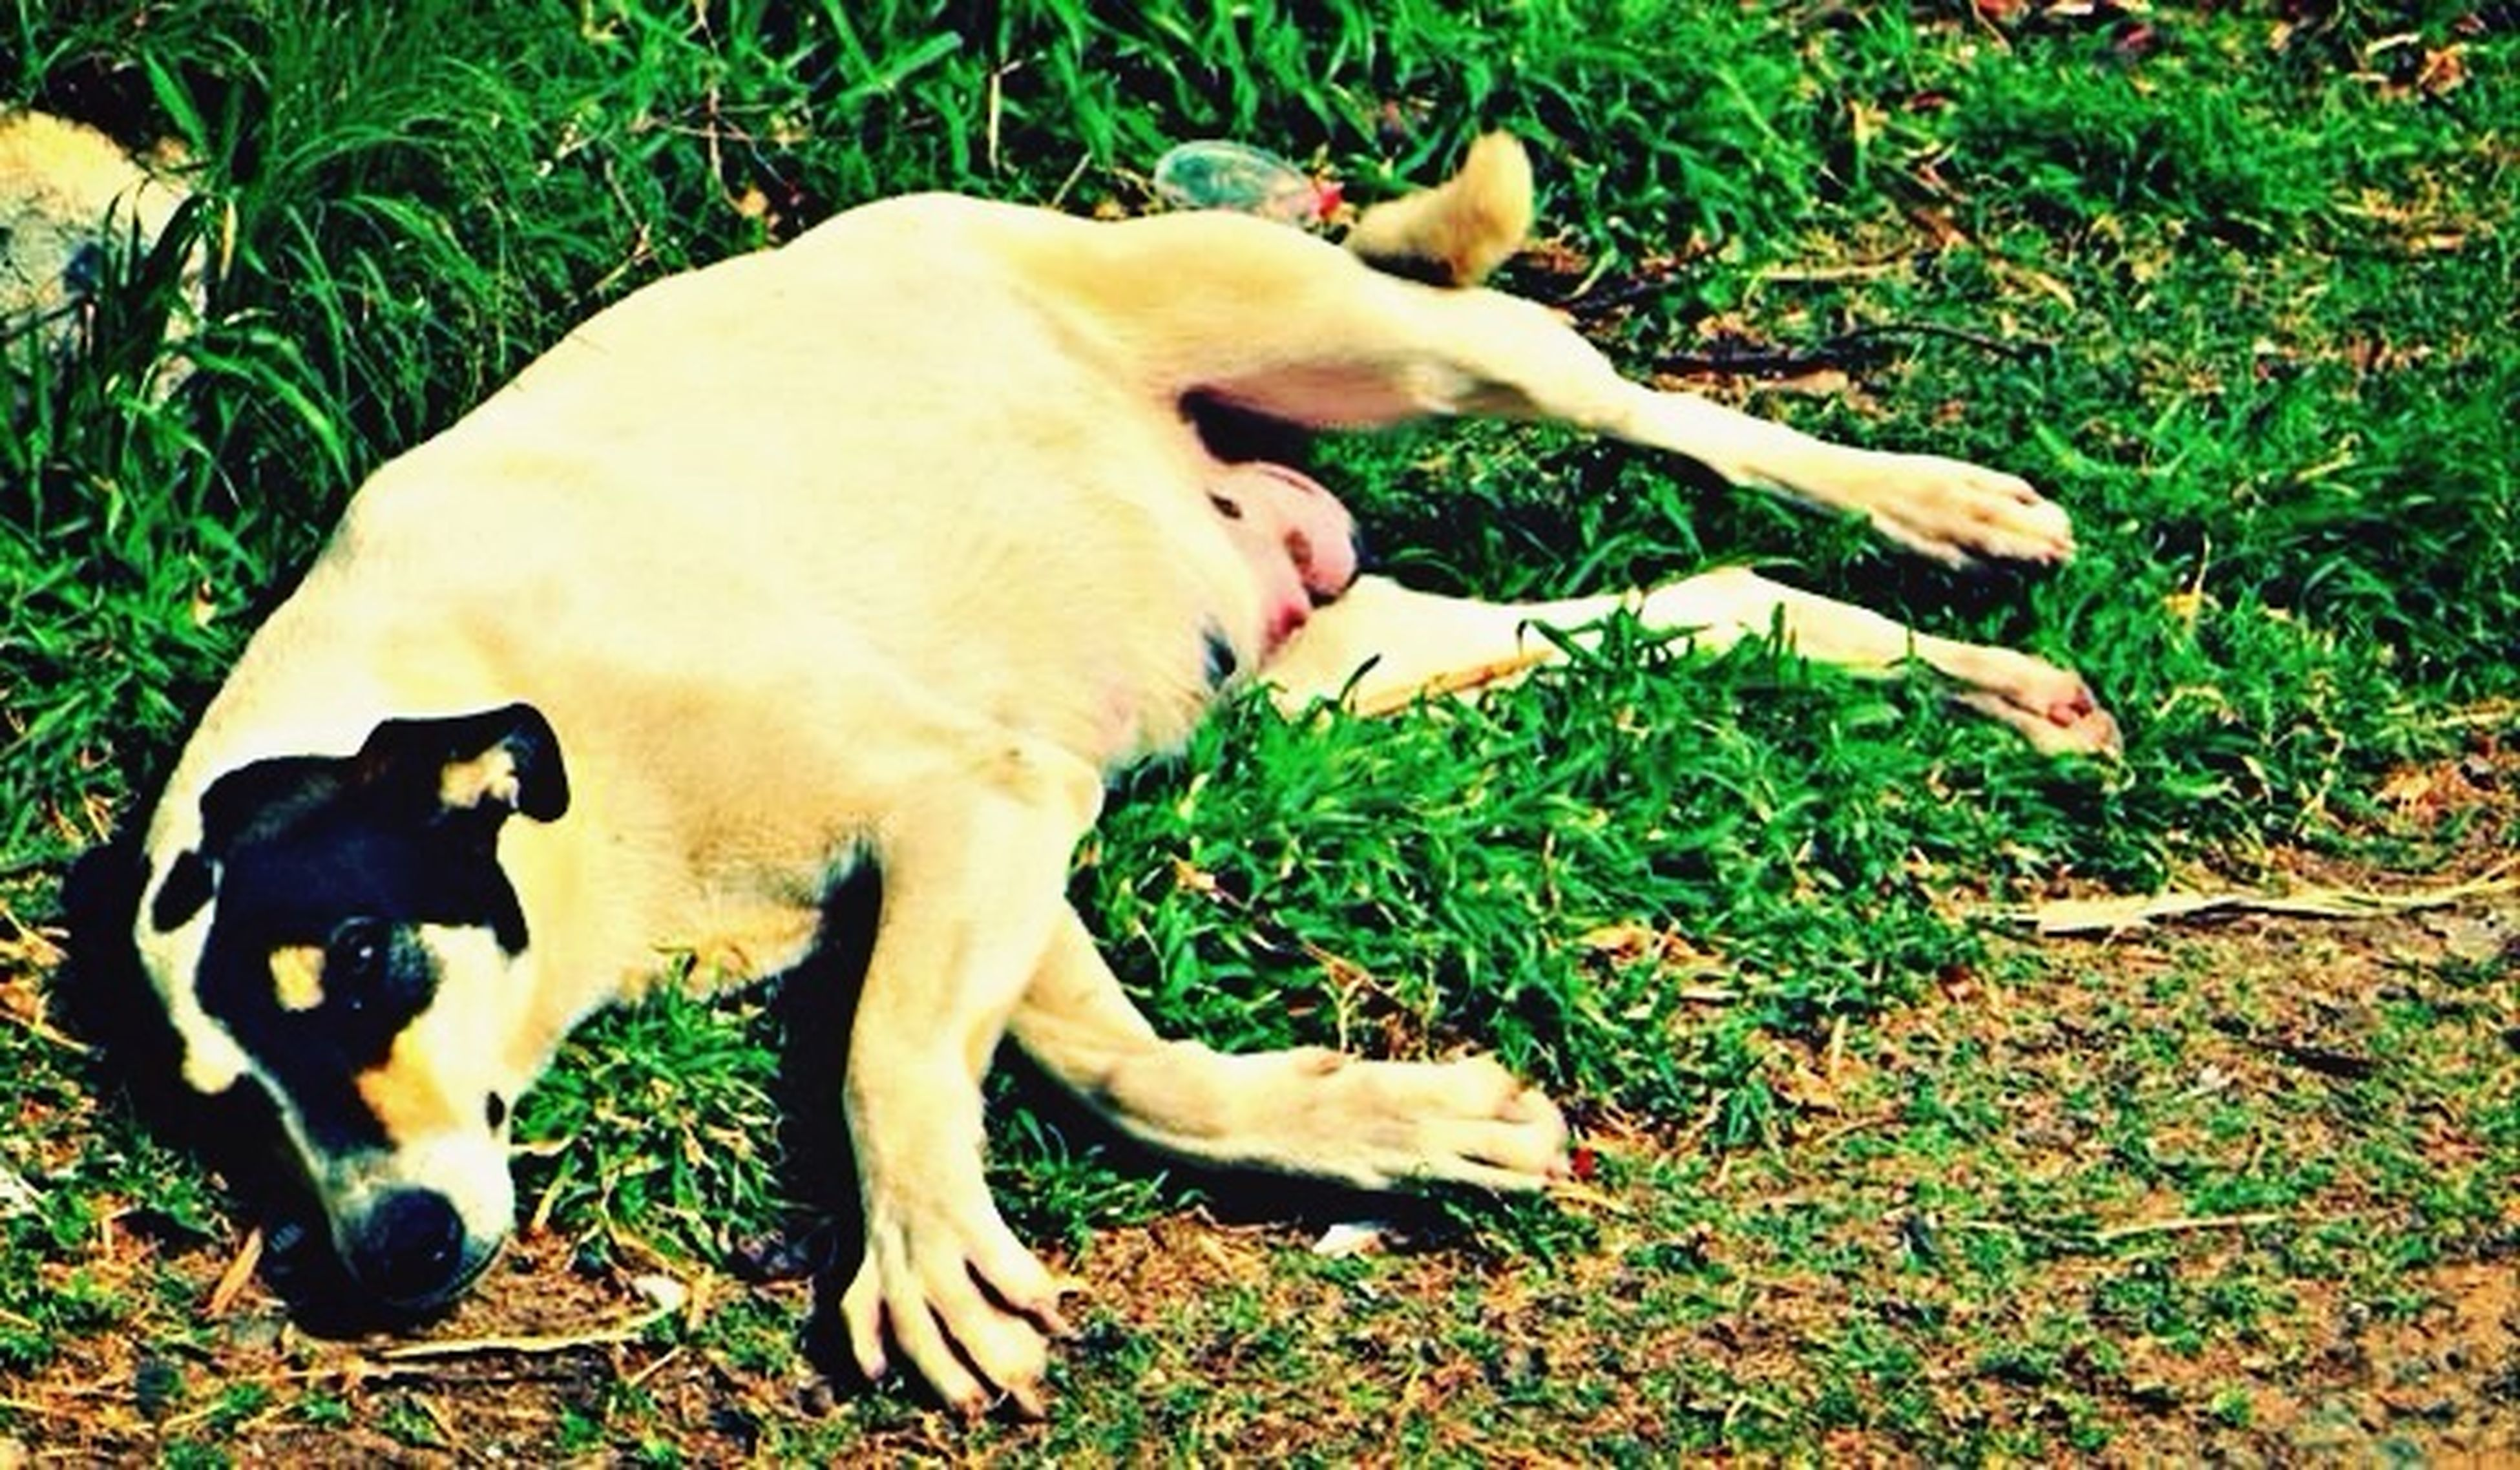 dog, domestic animals, pets, grass, animal themes, high angle view, one animal, mammal, field, grassy, relaxation, lying down, day, resting, nature, outdoors, leaf, no people, full length, standing